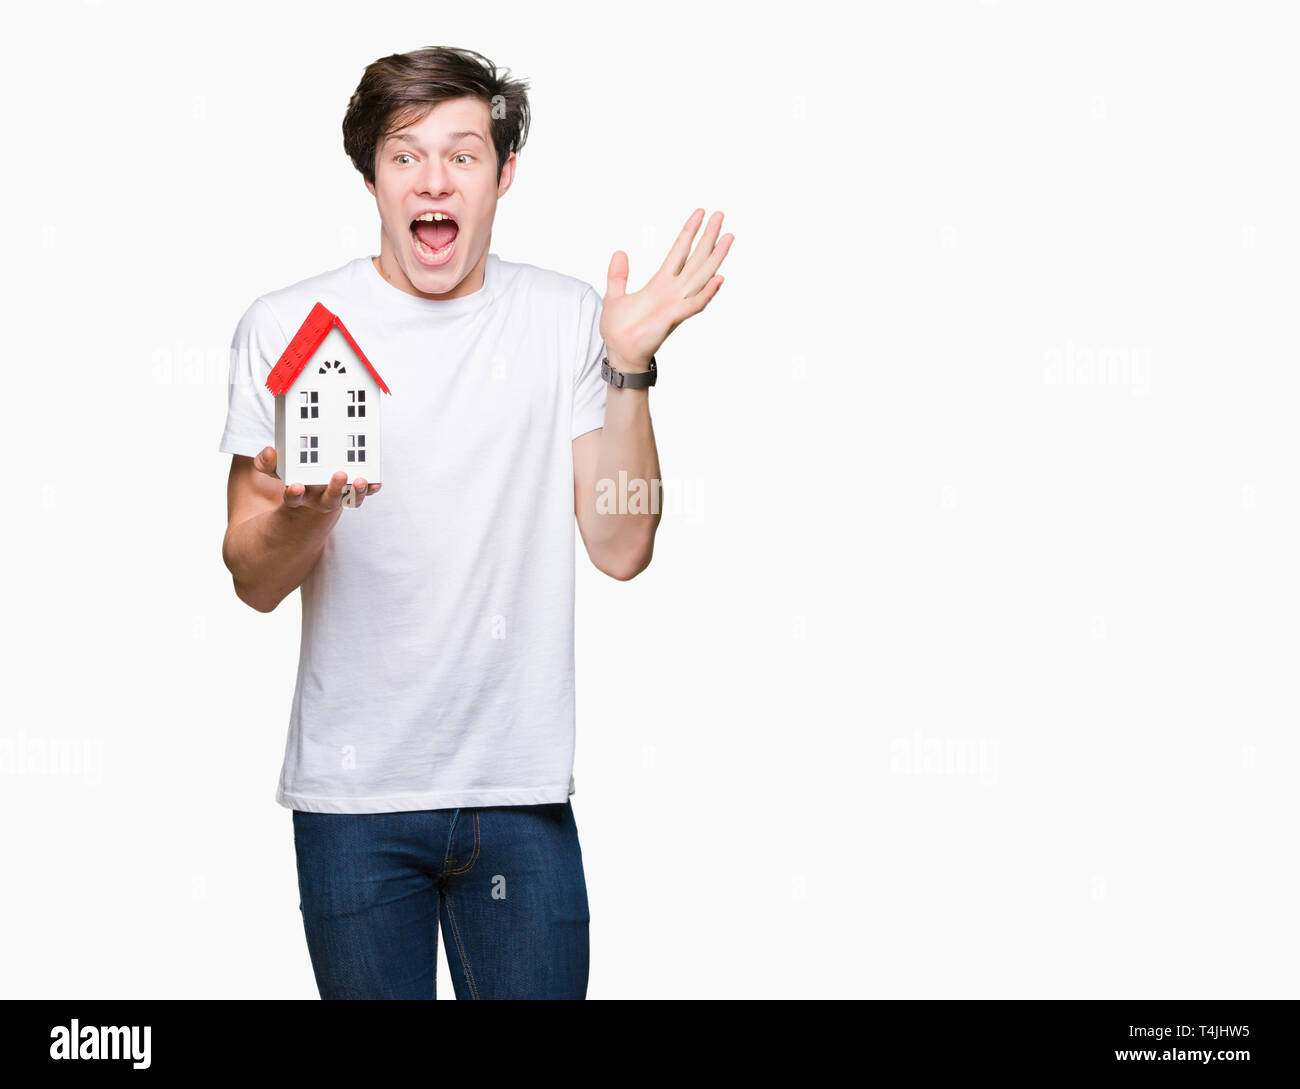 Young man holding house over isolated background very happy and excited, winner expression celebrating victory screaming with big smile and raised han - Stock Image